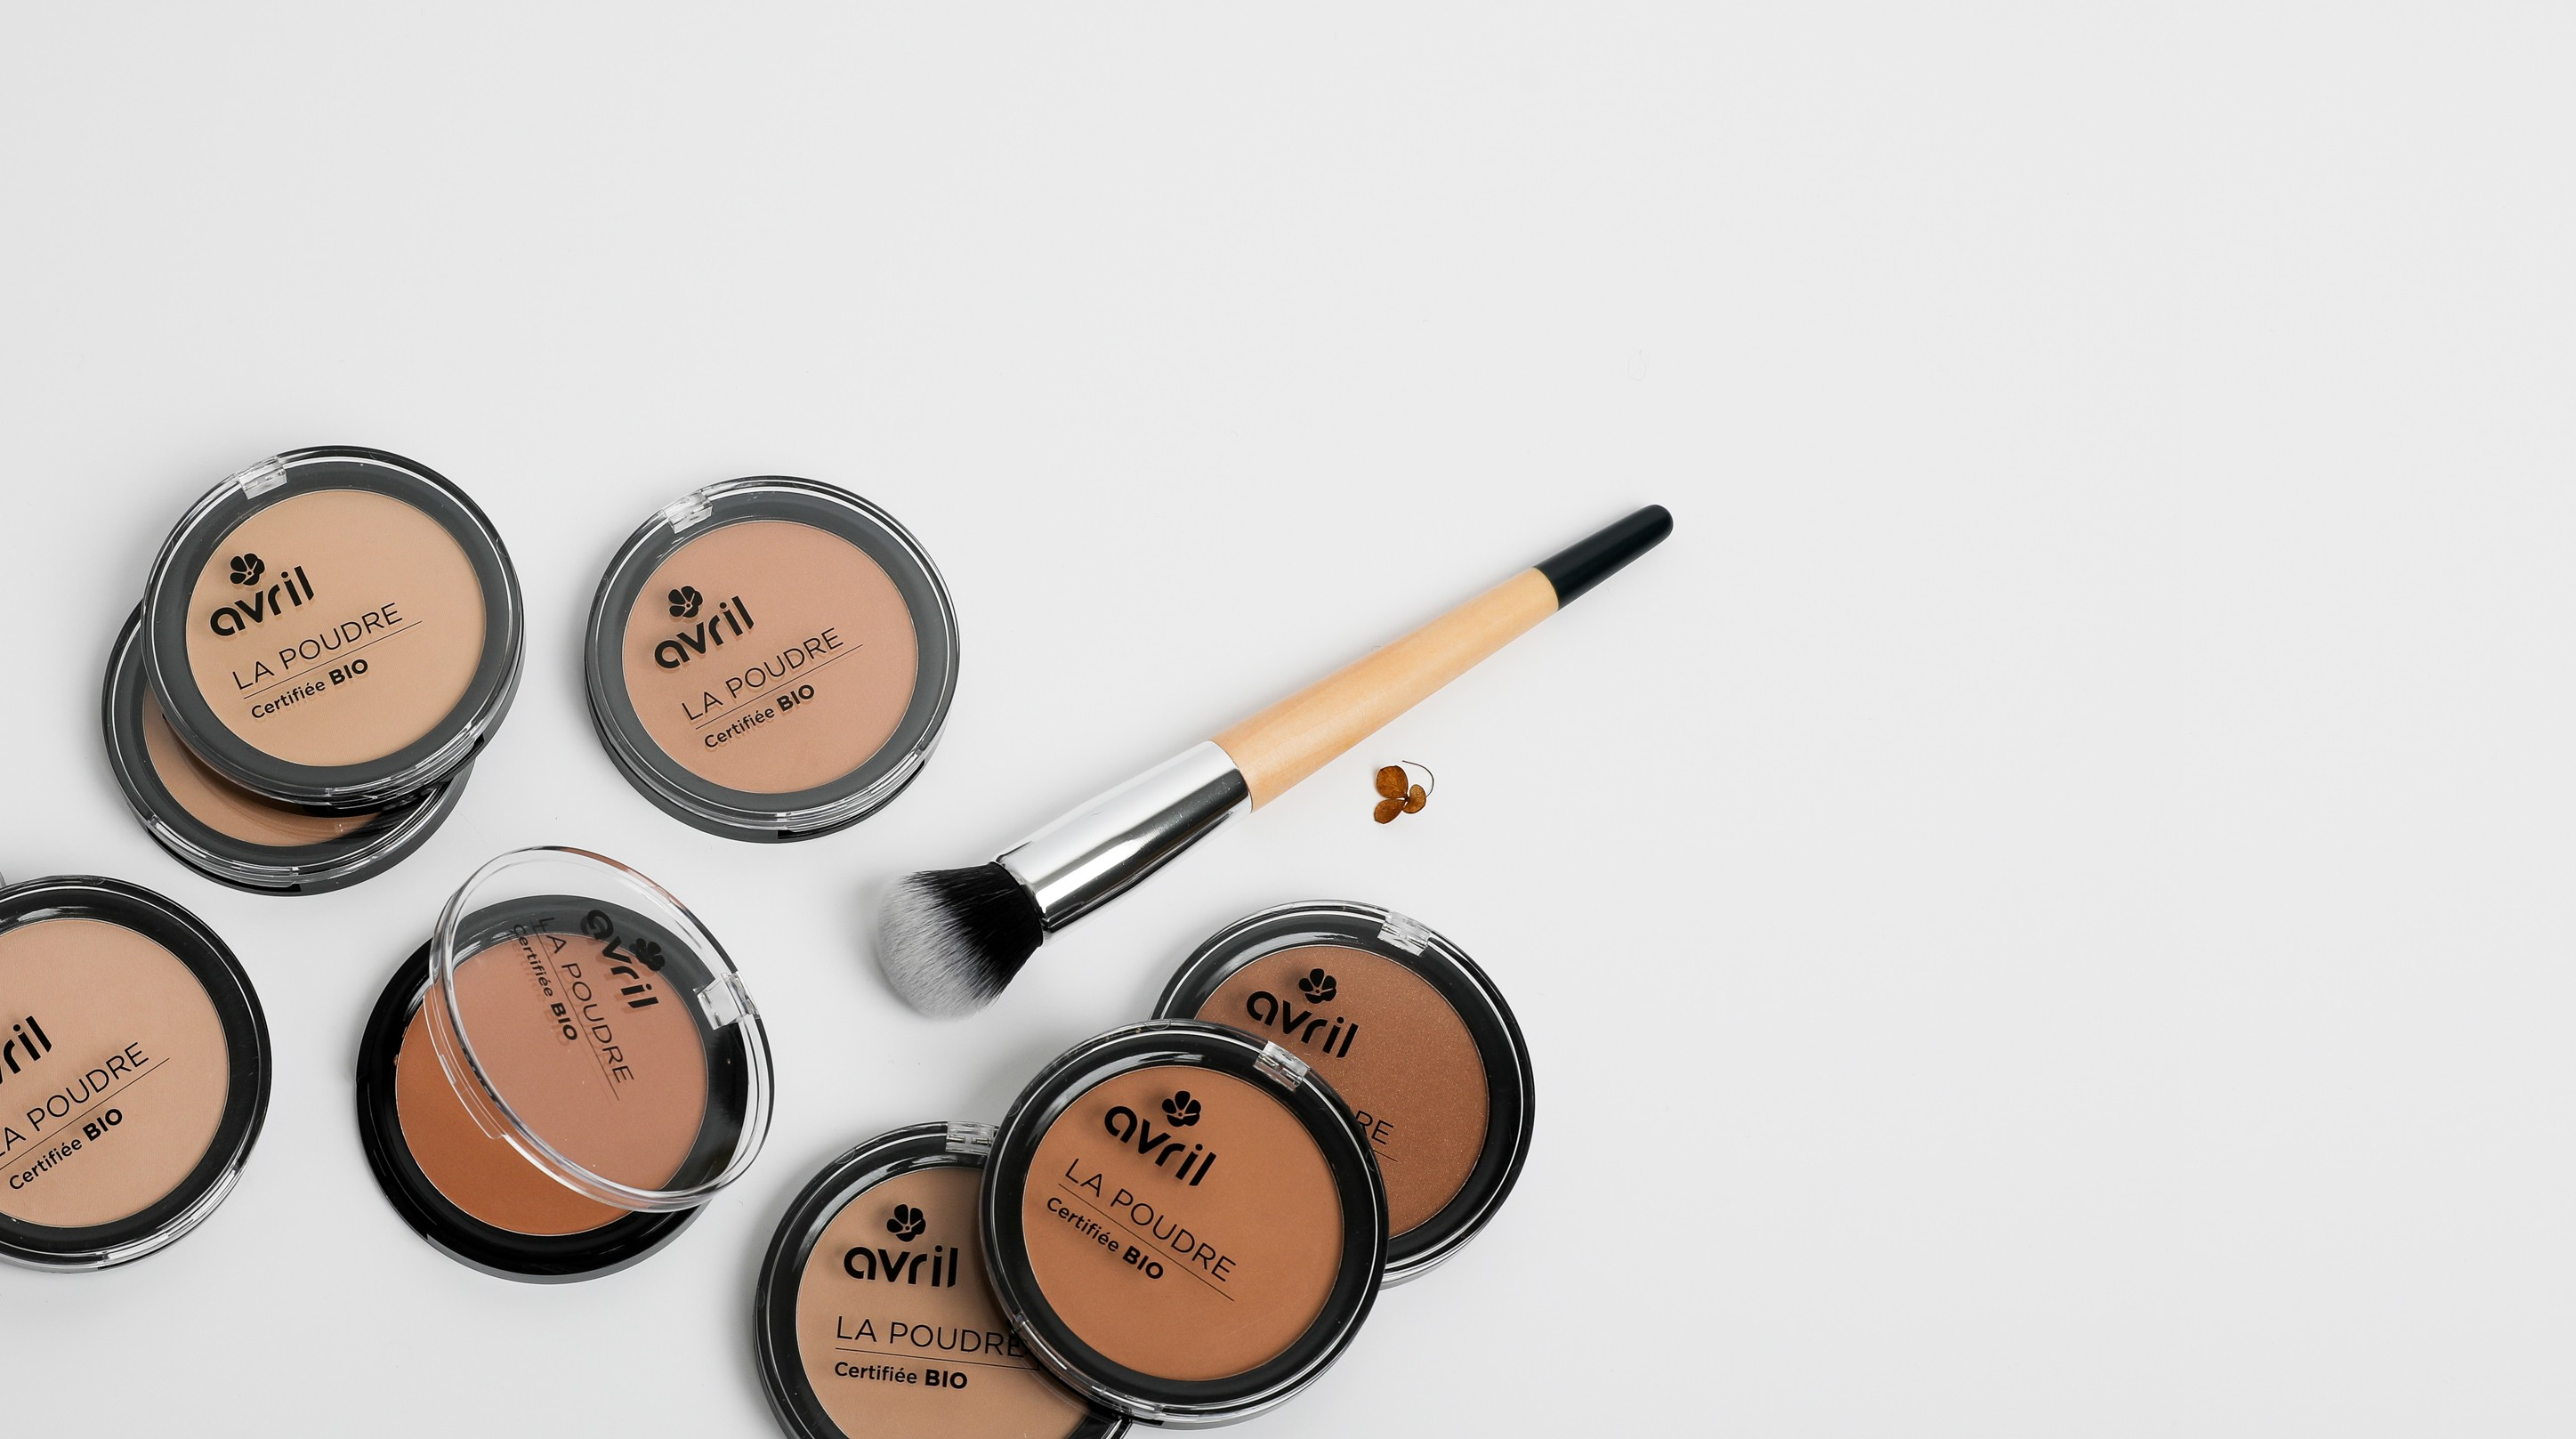 Good-looking & Contouring powder